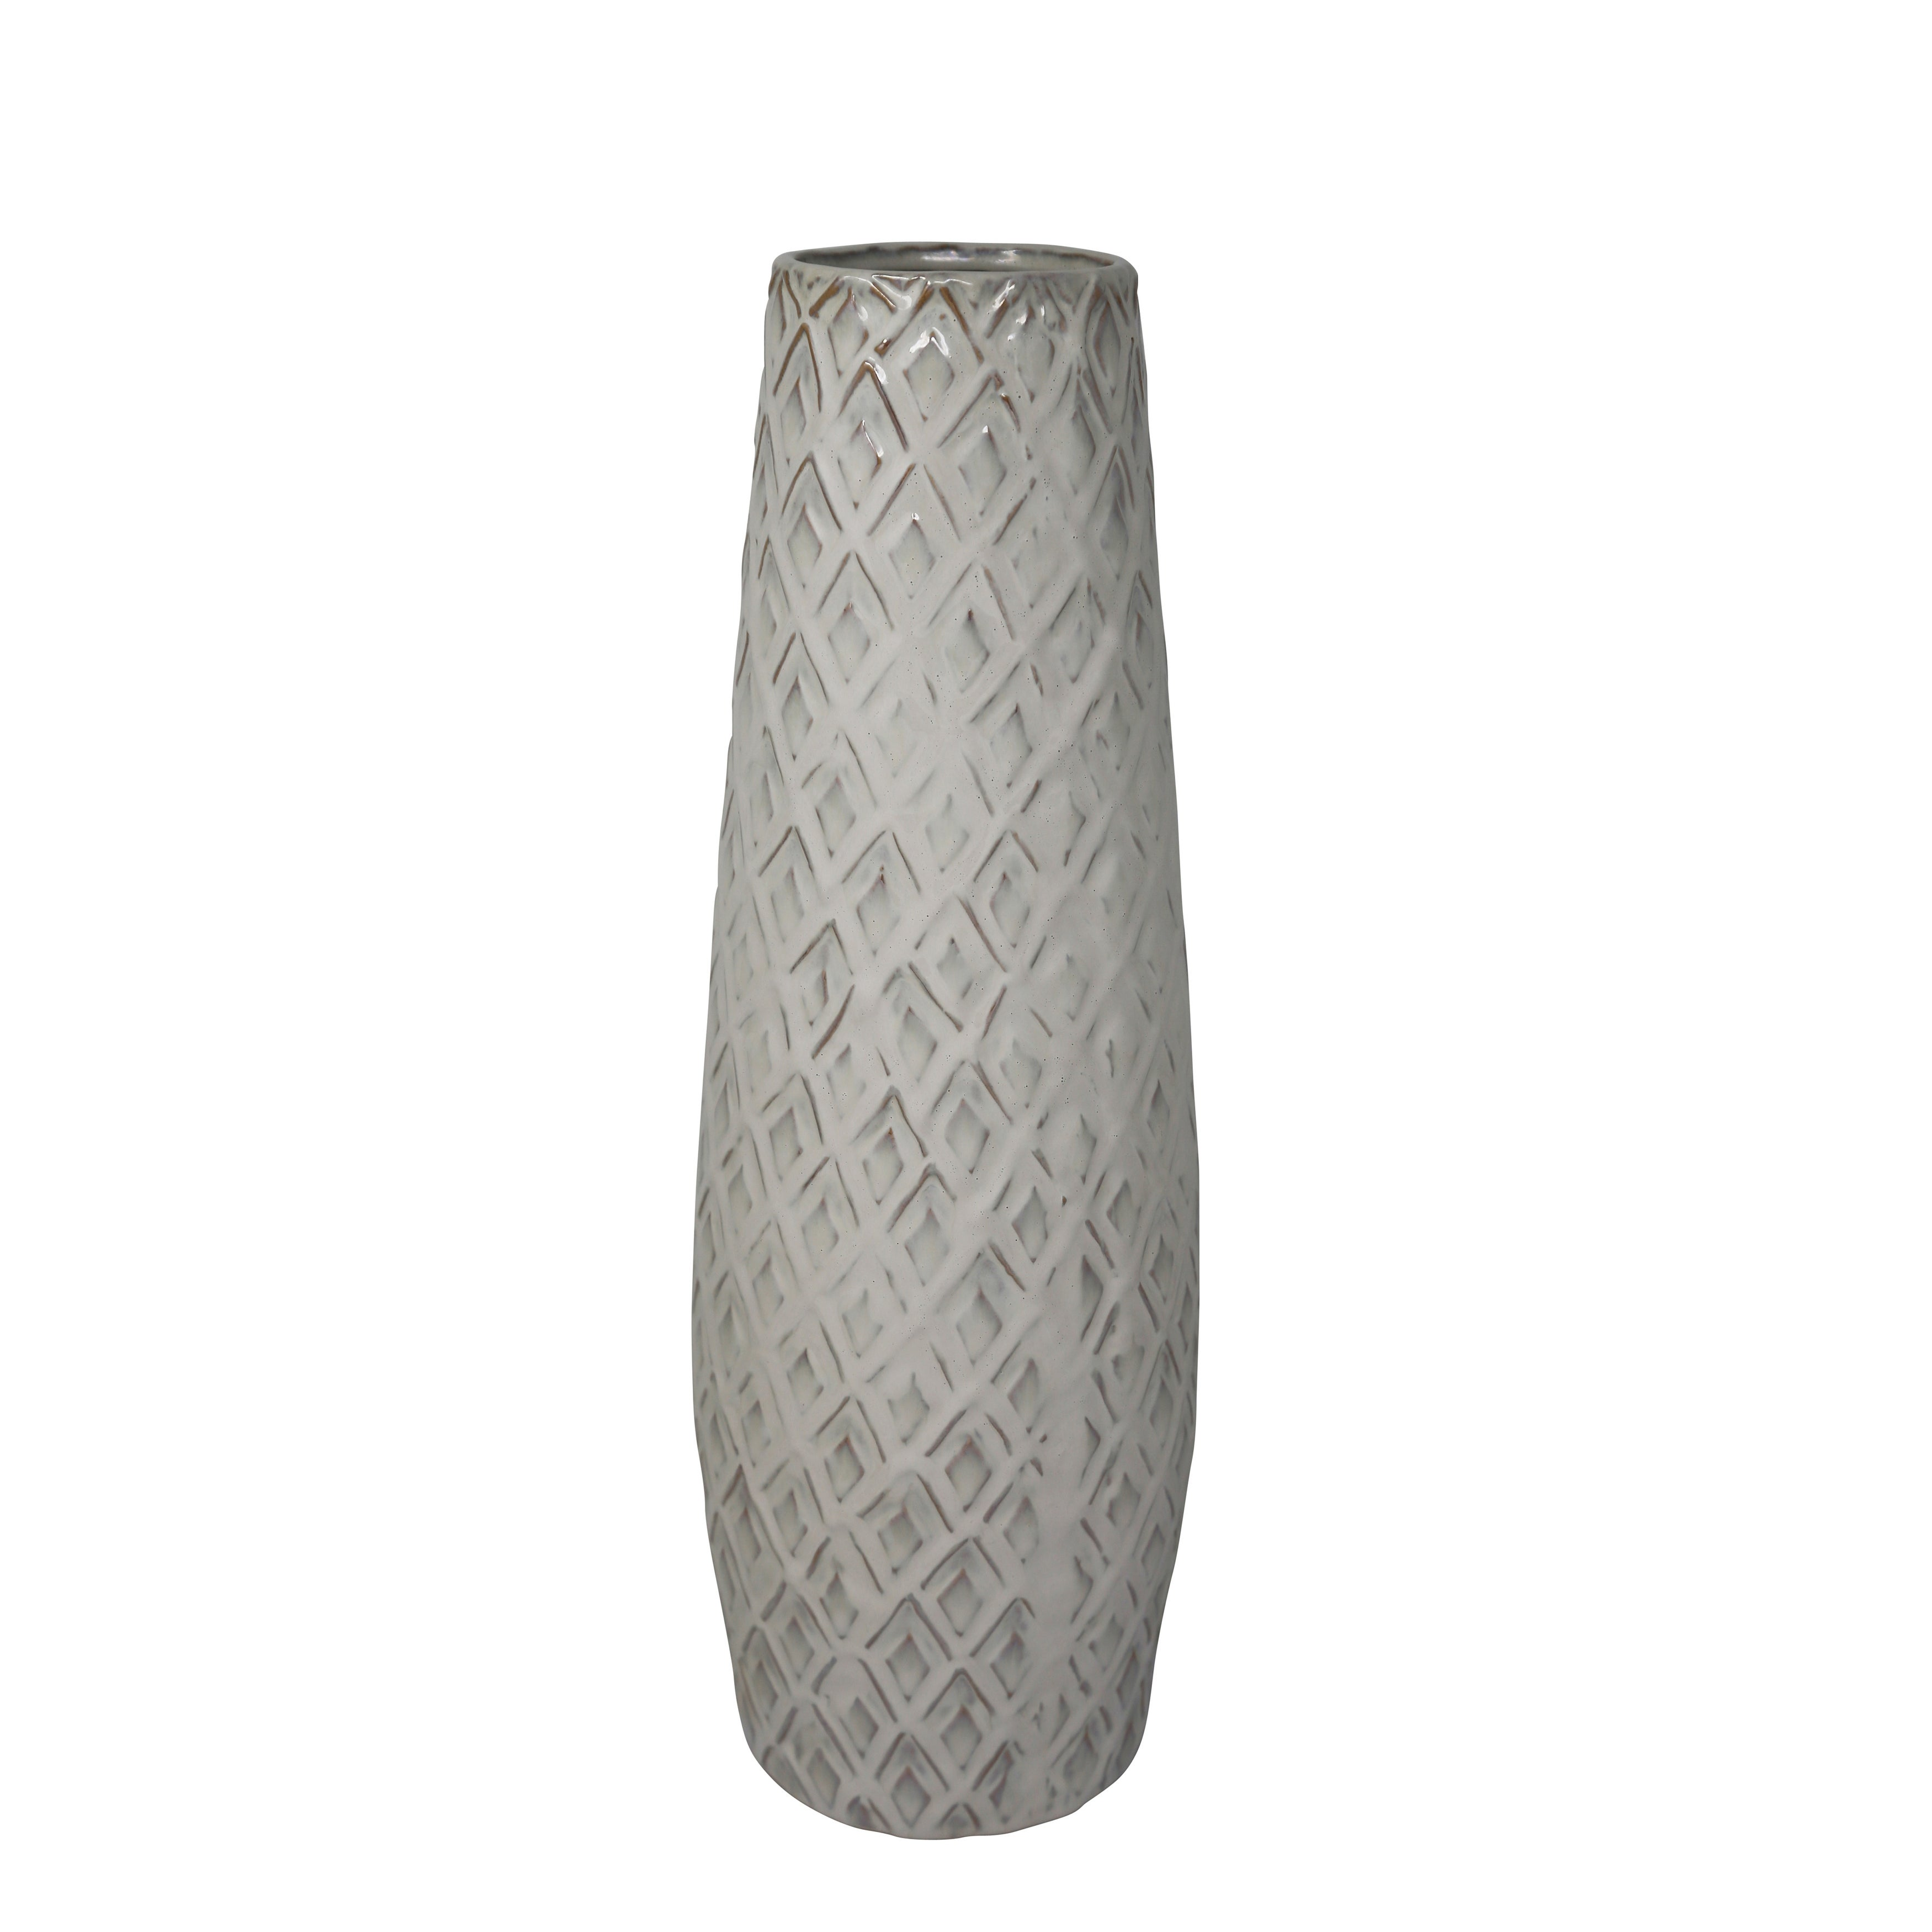 Ceramic Convex Table Vase with Embossed Diamond Design, White